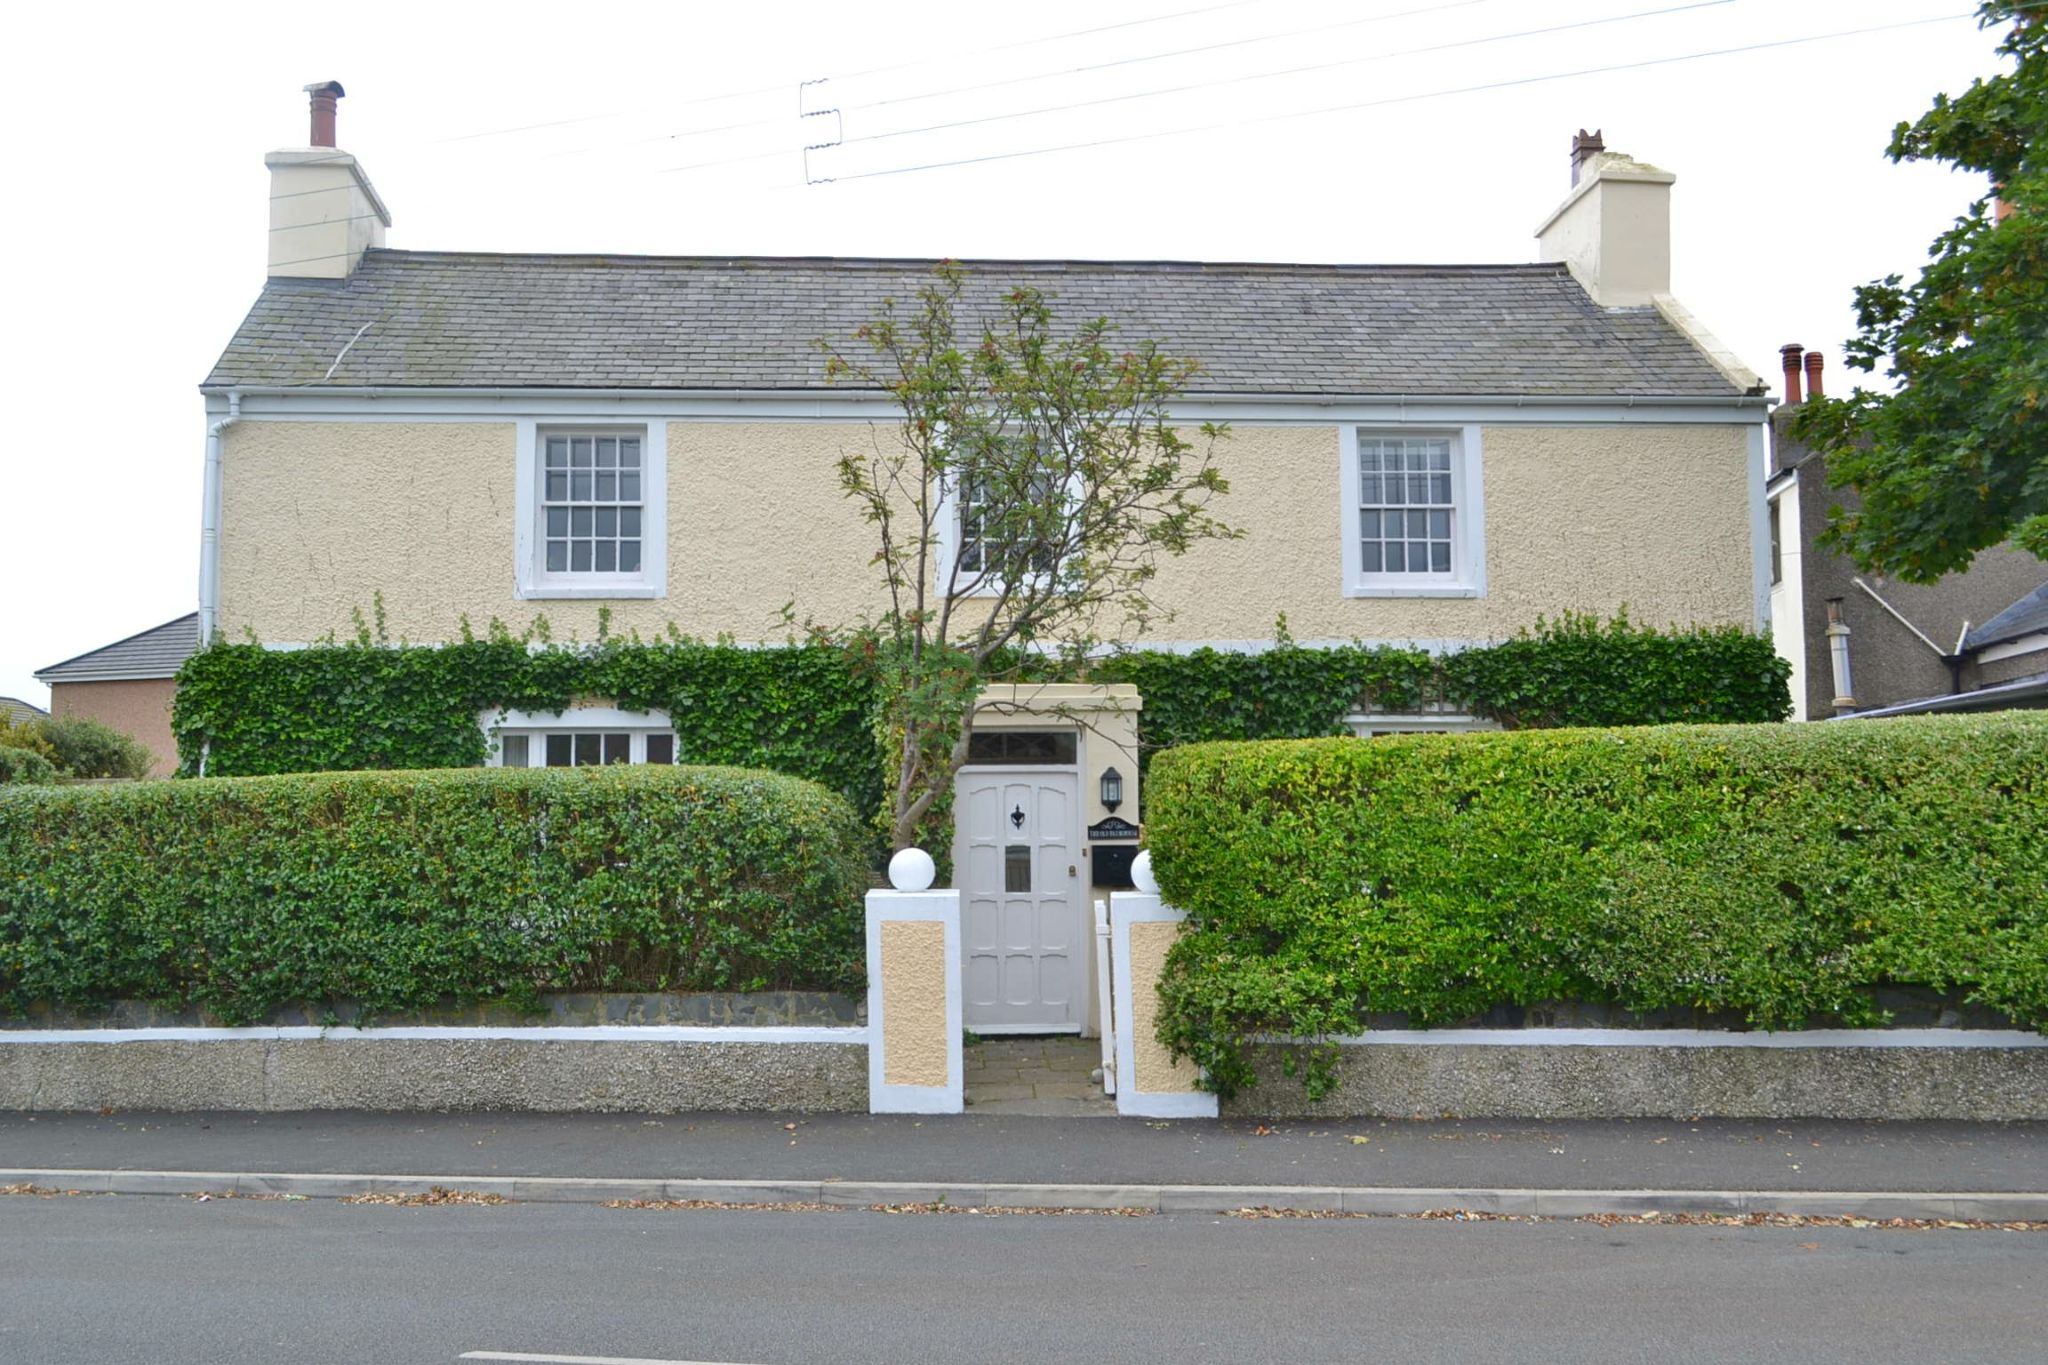 4 bedroom detached house To Let in Port St Mary - Photograph 1